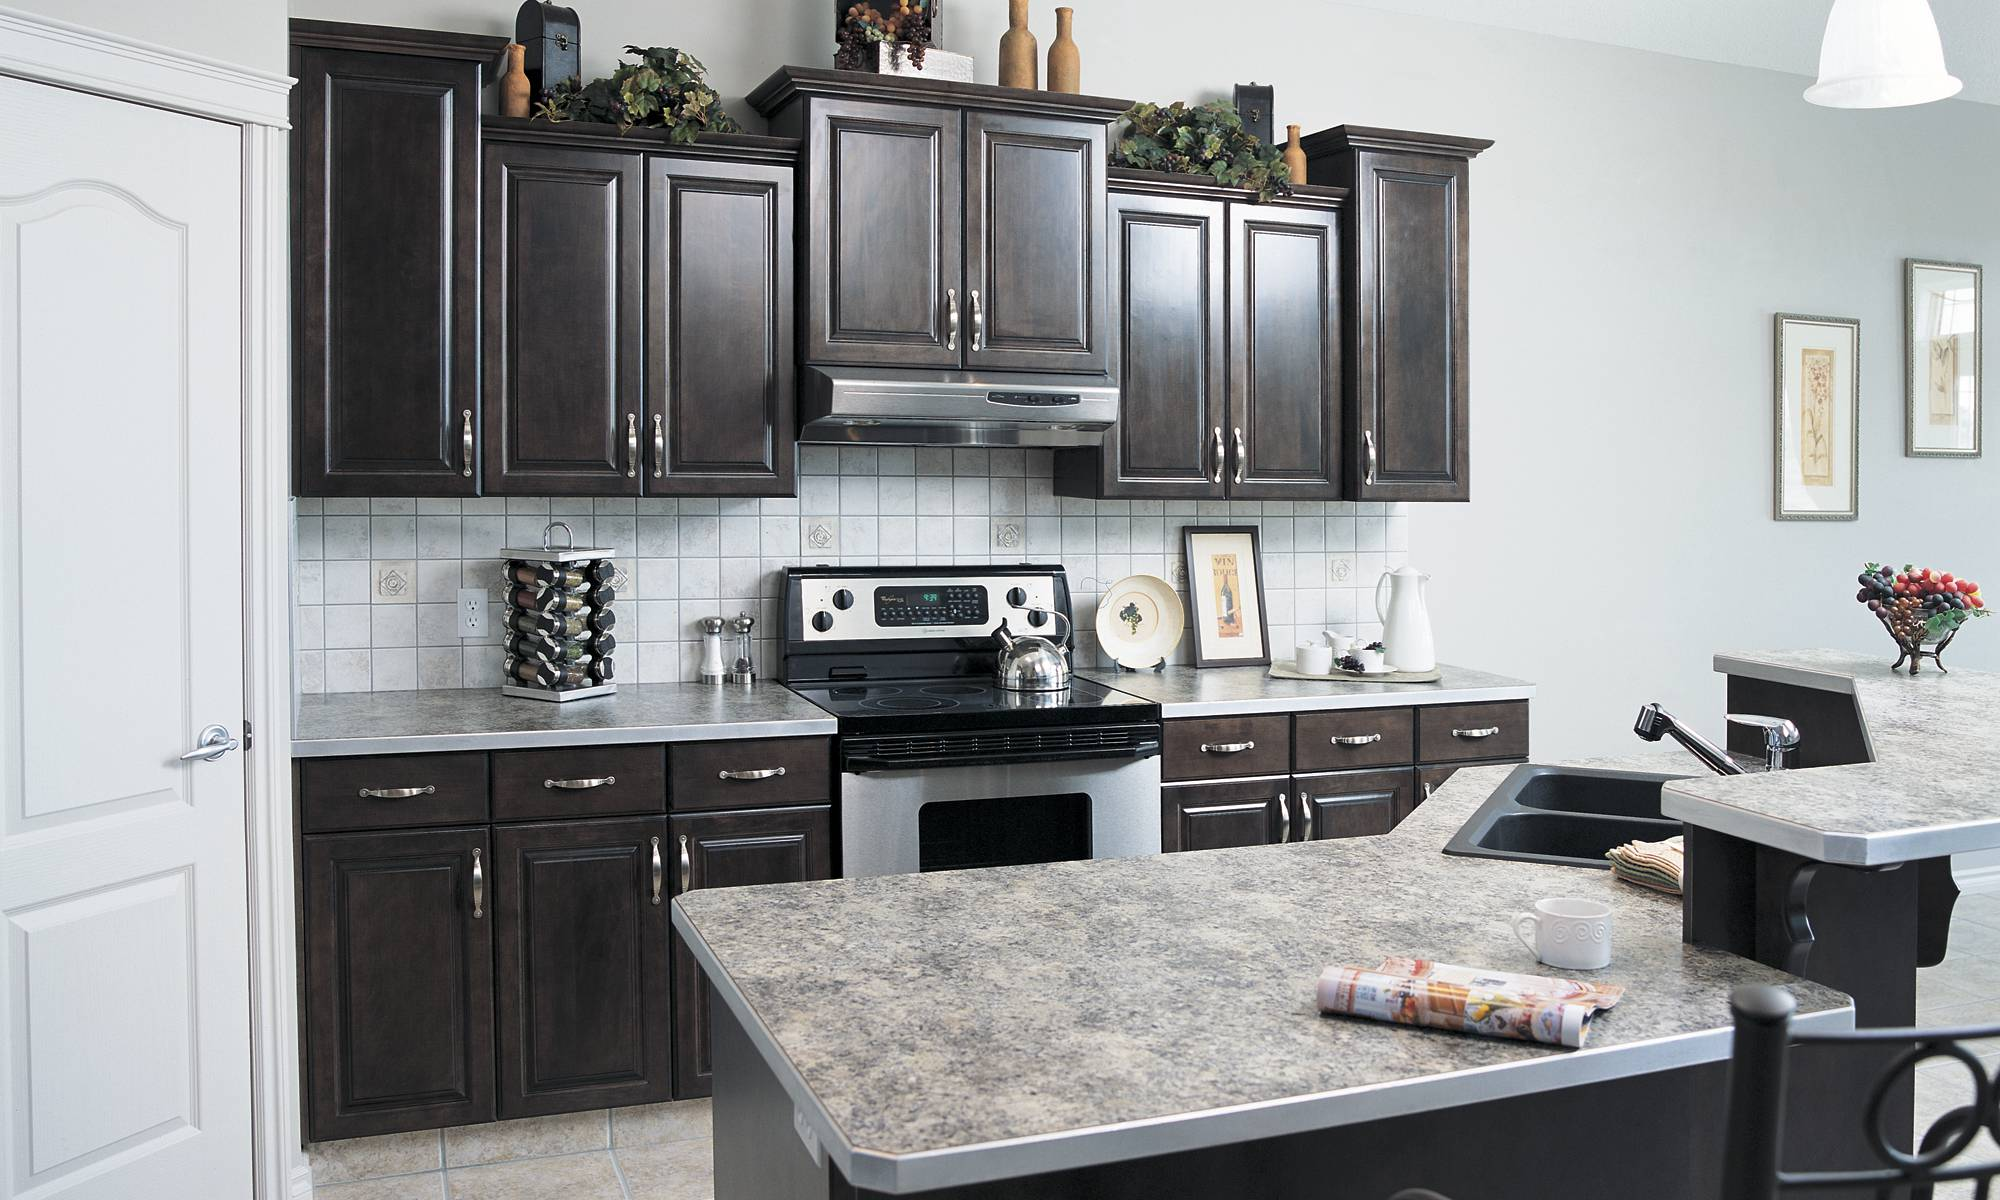 kitchen-cabinet-paint-colors-gray-tile-floor-refurbishing-ideas_gray-cabinets-with-wood-floors_general-electric-range-parts-list_light-fixture-manufacturers-in.jpg